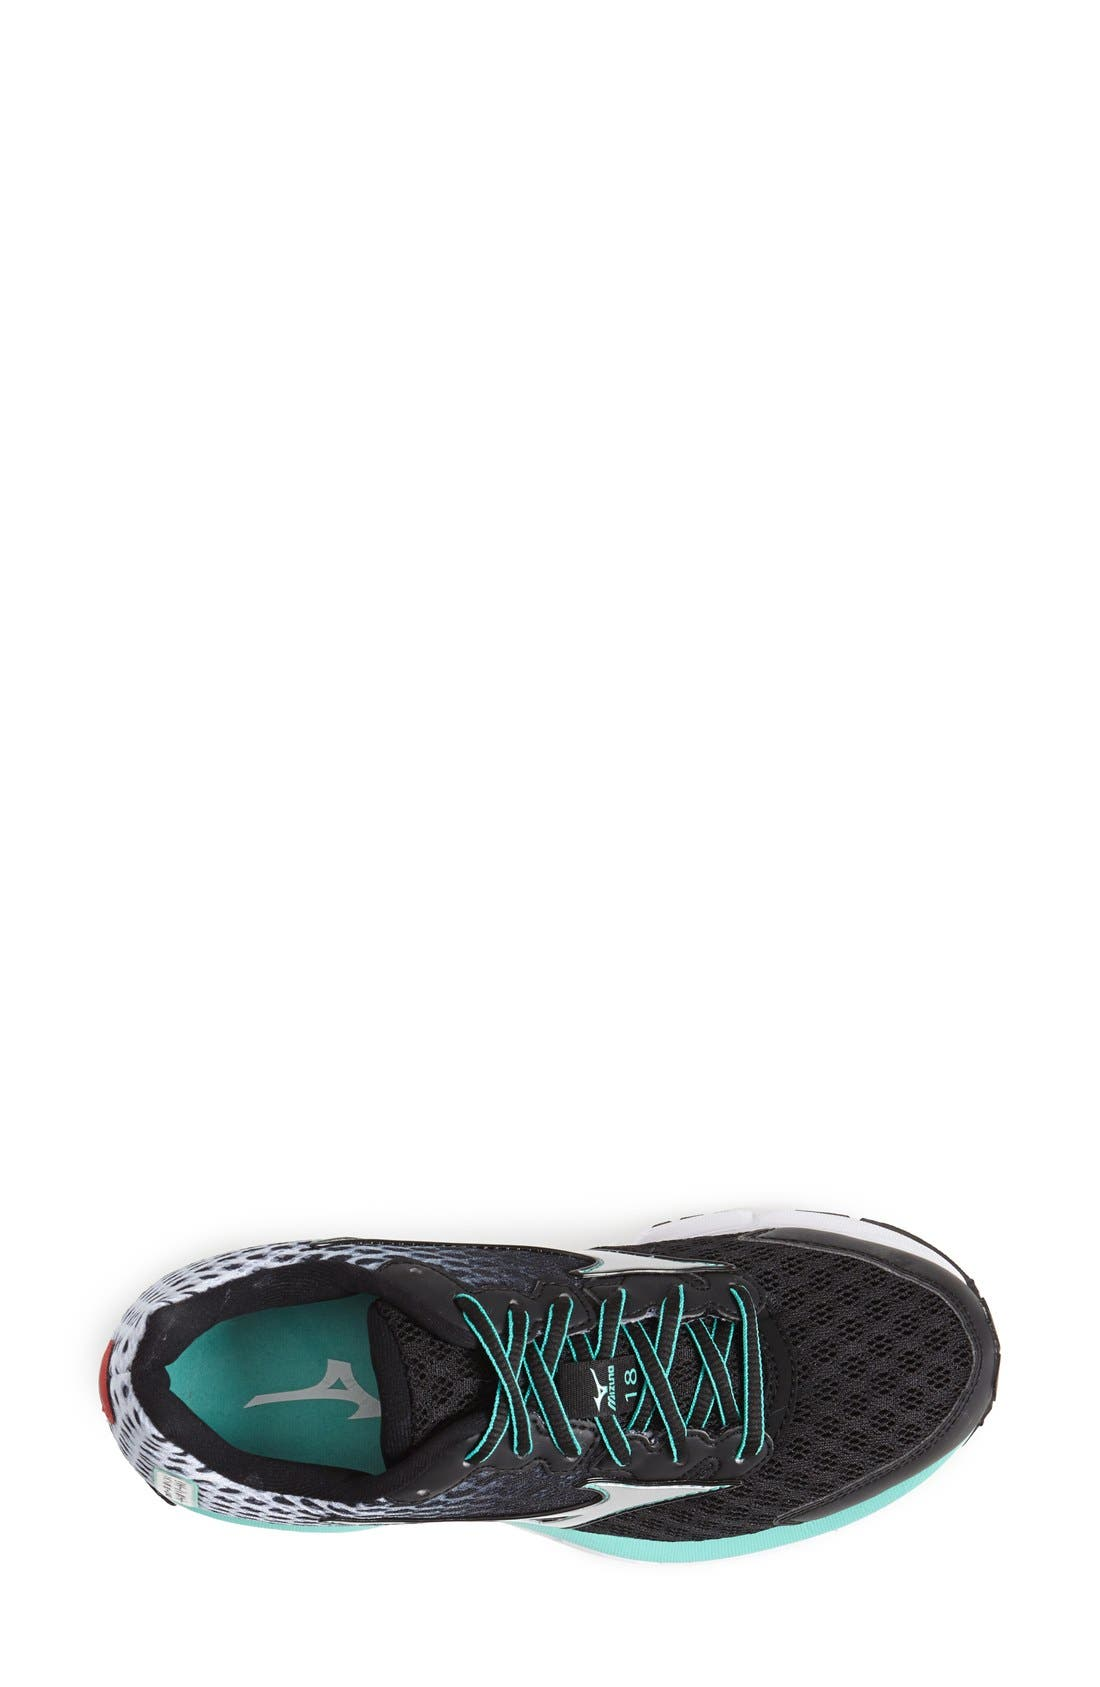 'Wave Rider 18' Running Shoe,                             Alternate thumbnail 4, color,                             017